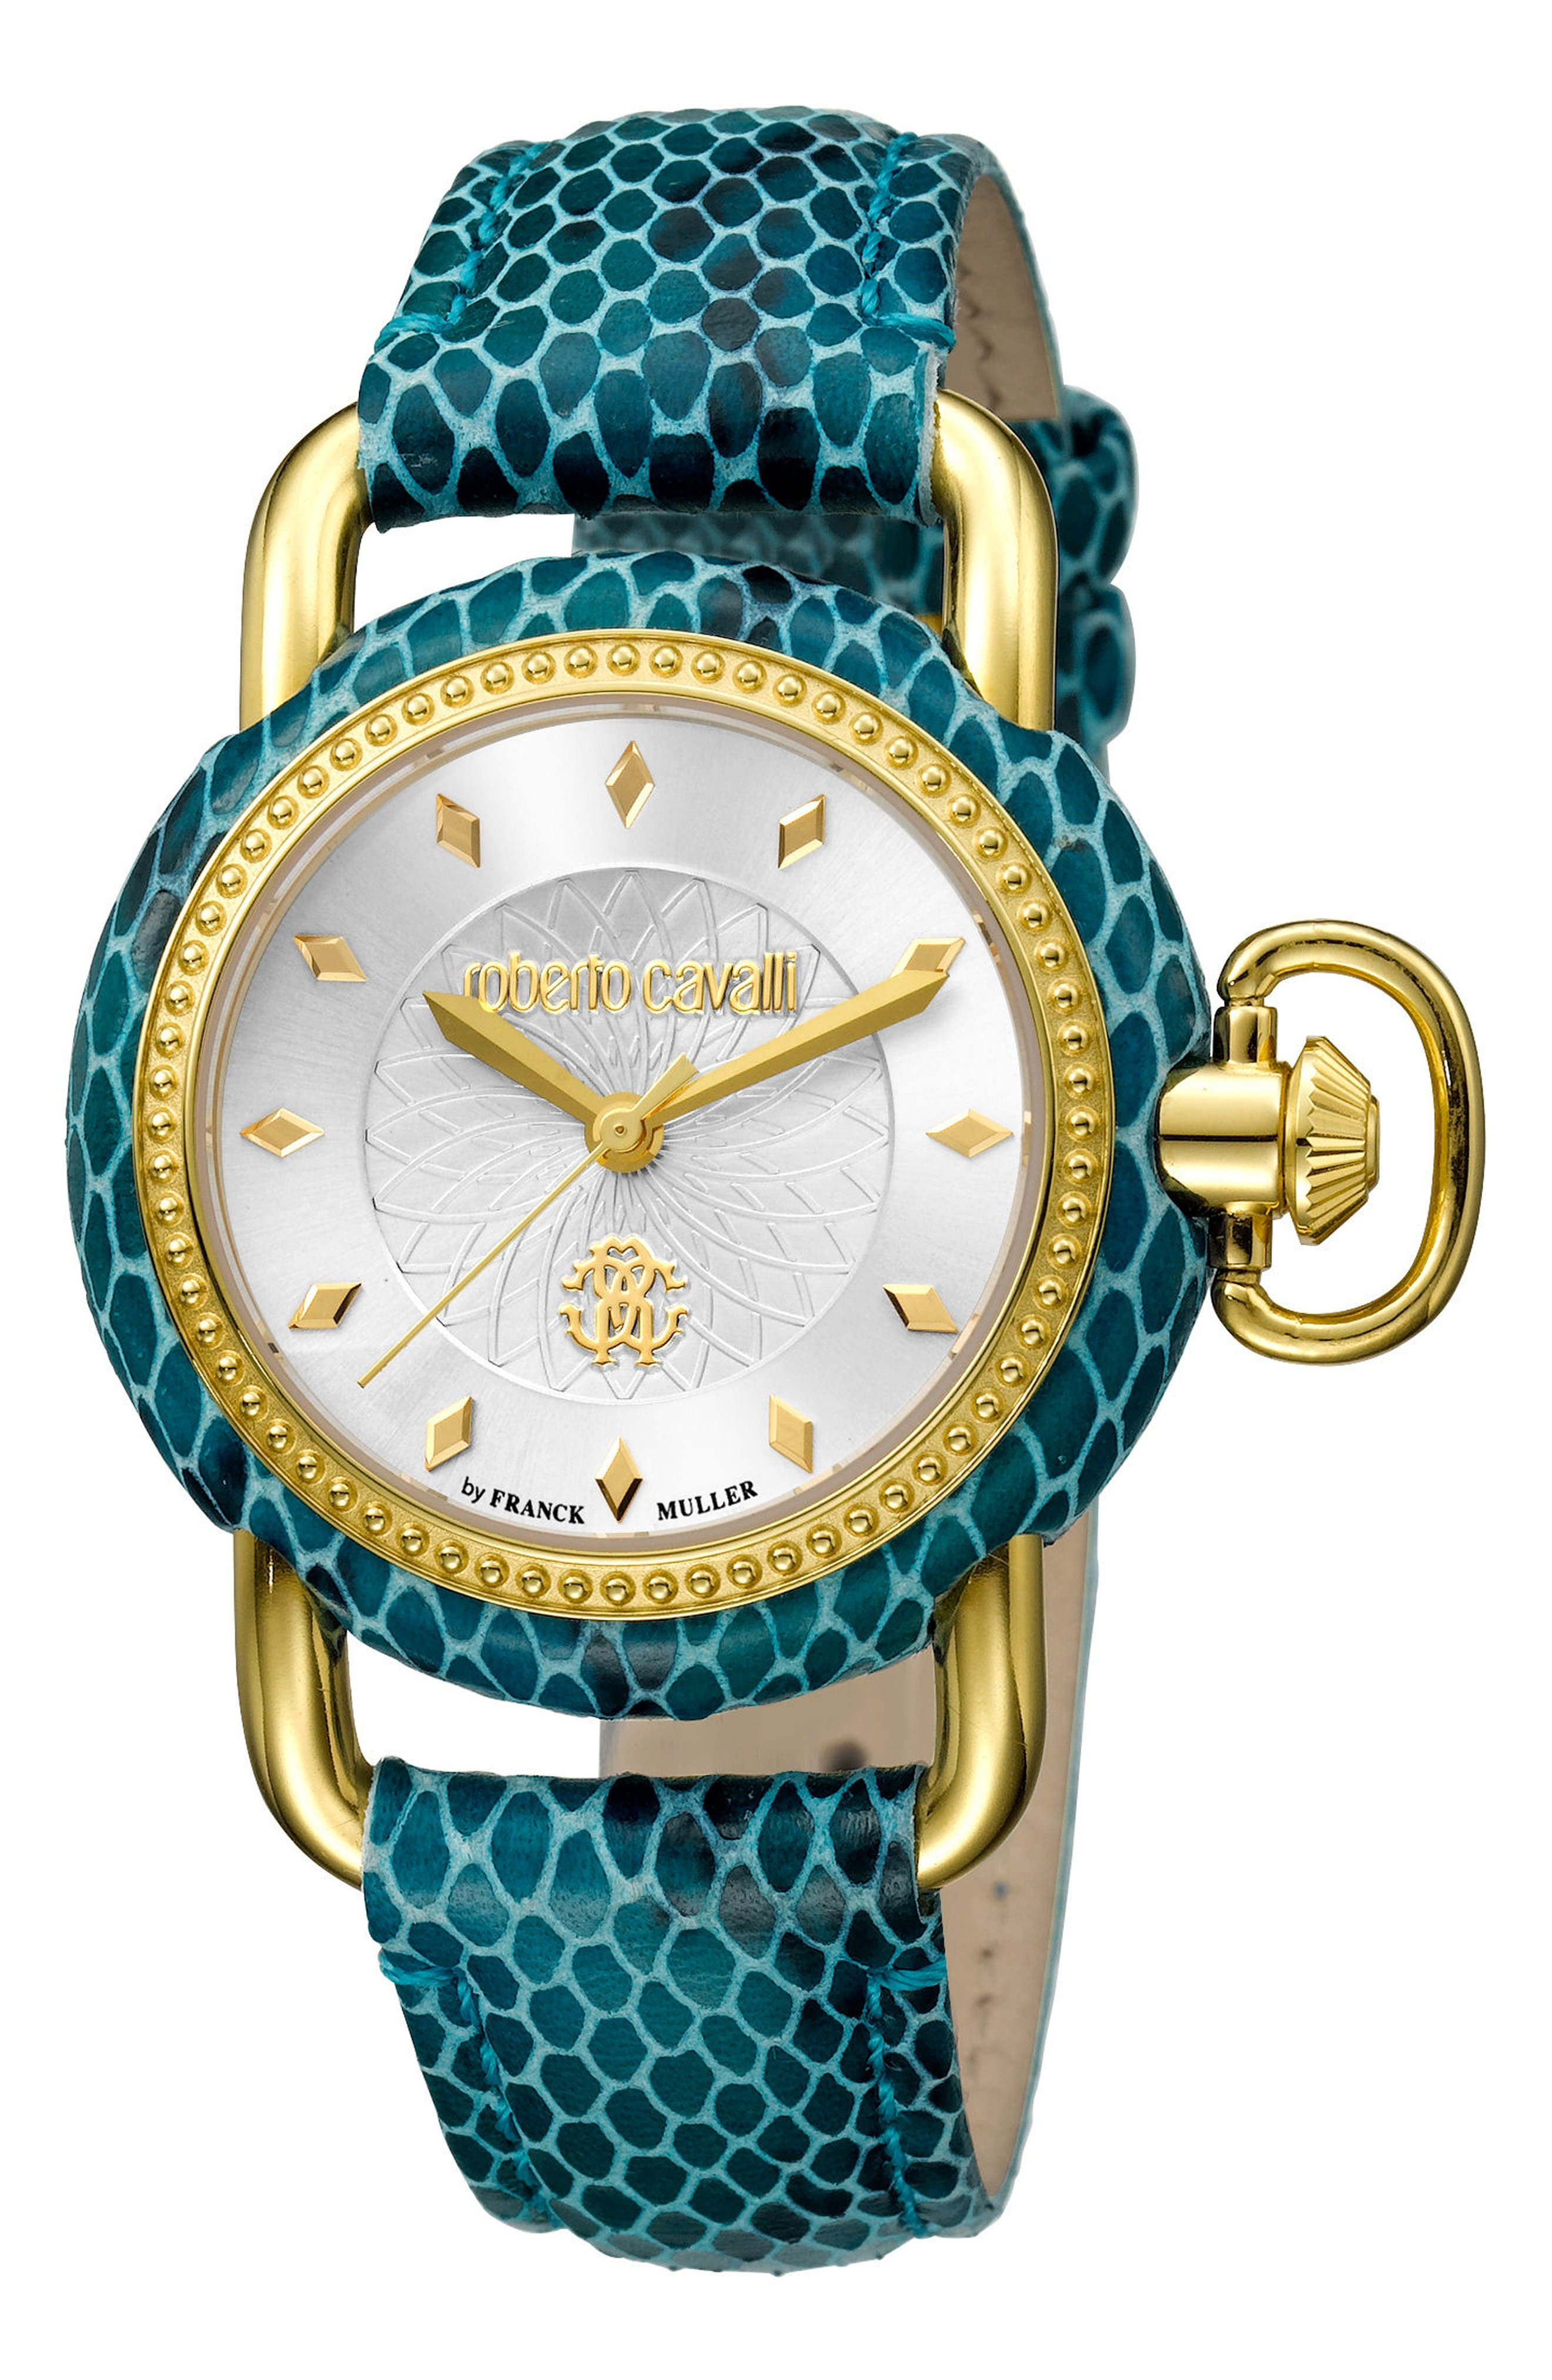 Roberto Cavalli by Franck Muller Snake Leather Strap Watch, 36mm